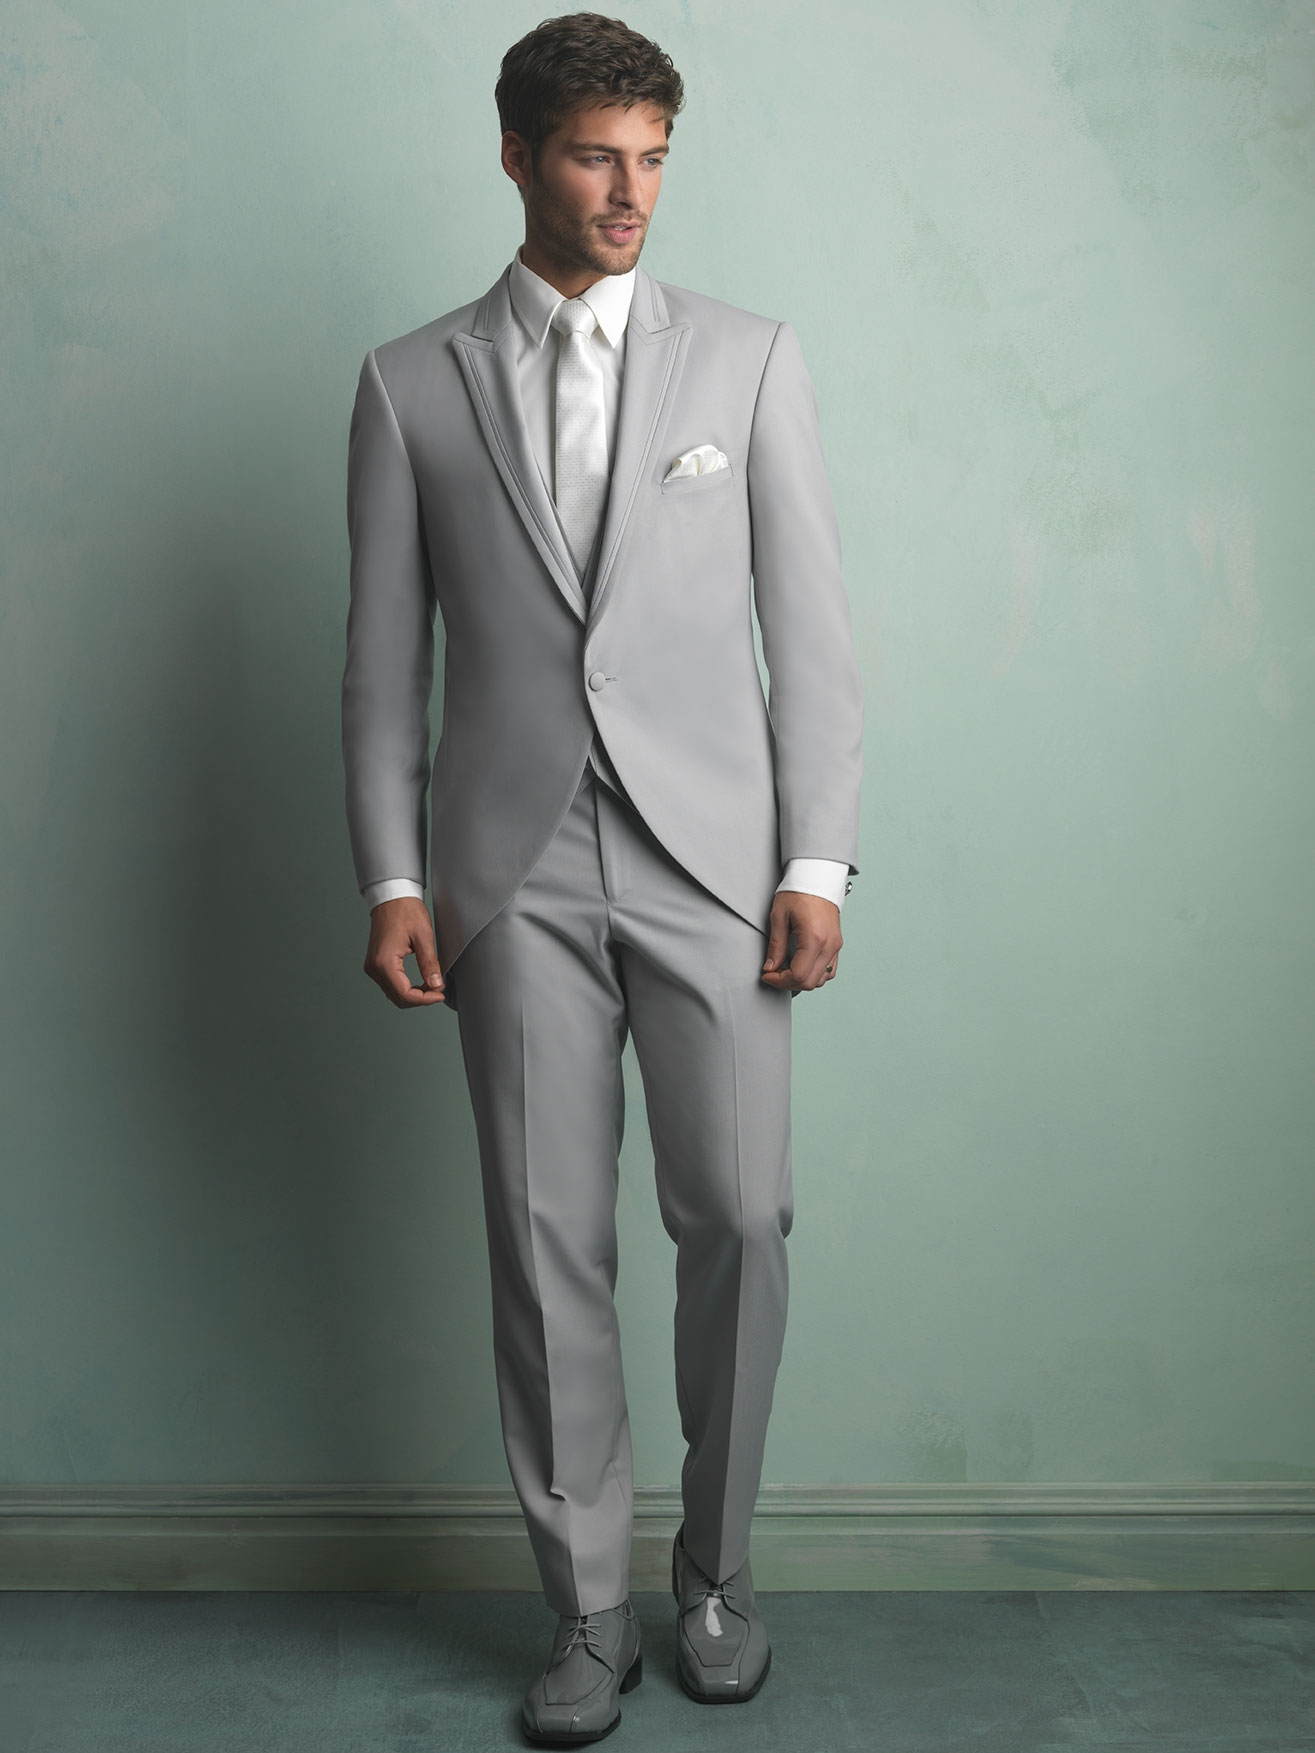 Tuxedo and Suit Rental – Eskay Bridal